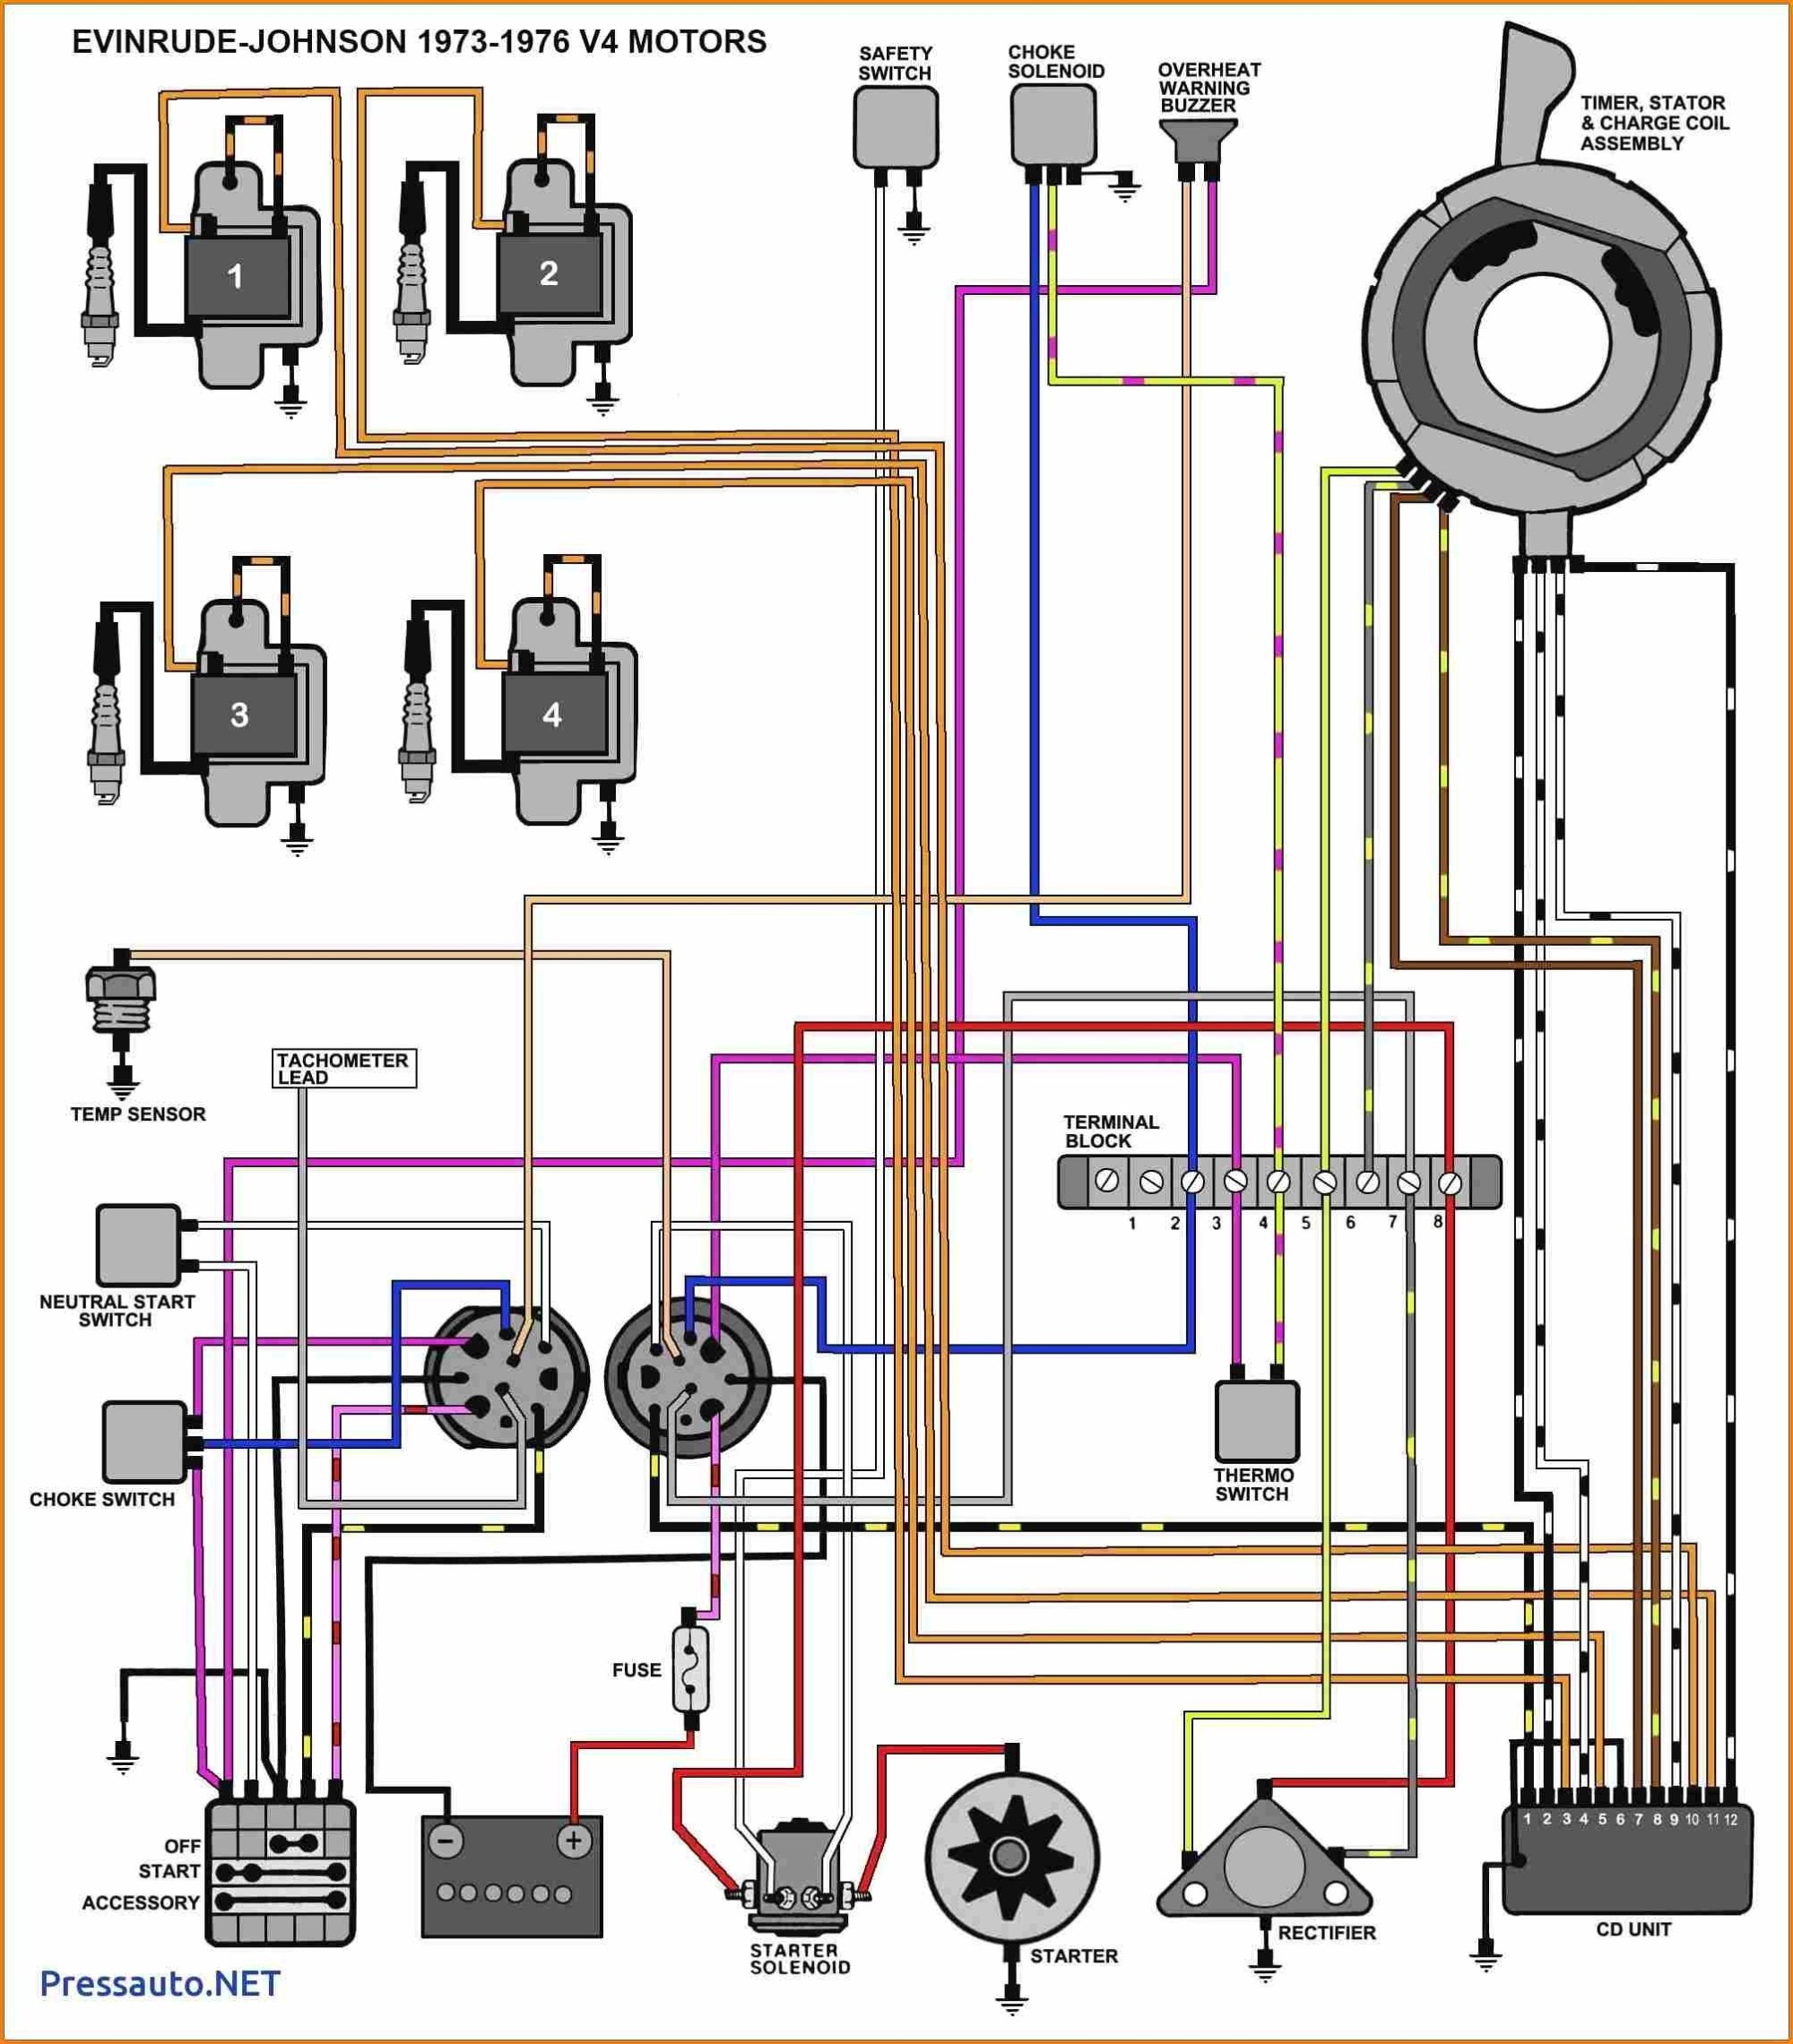 hight resolution of mercury 4 stroke wiring diagram wiring diagram megamercury 9 9 4 stroke wiring diagram wiring diagram